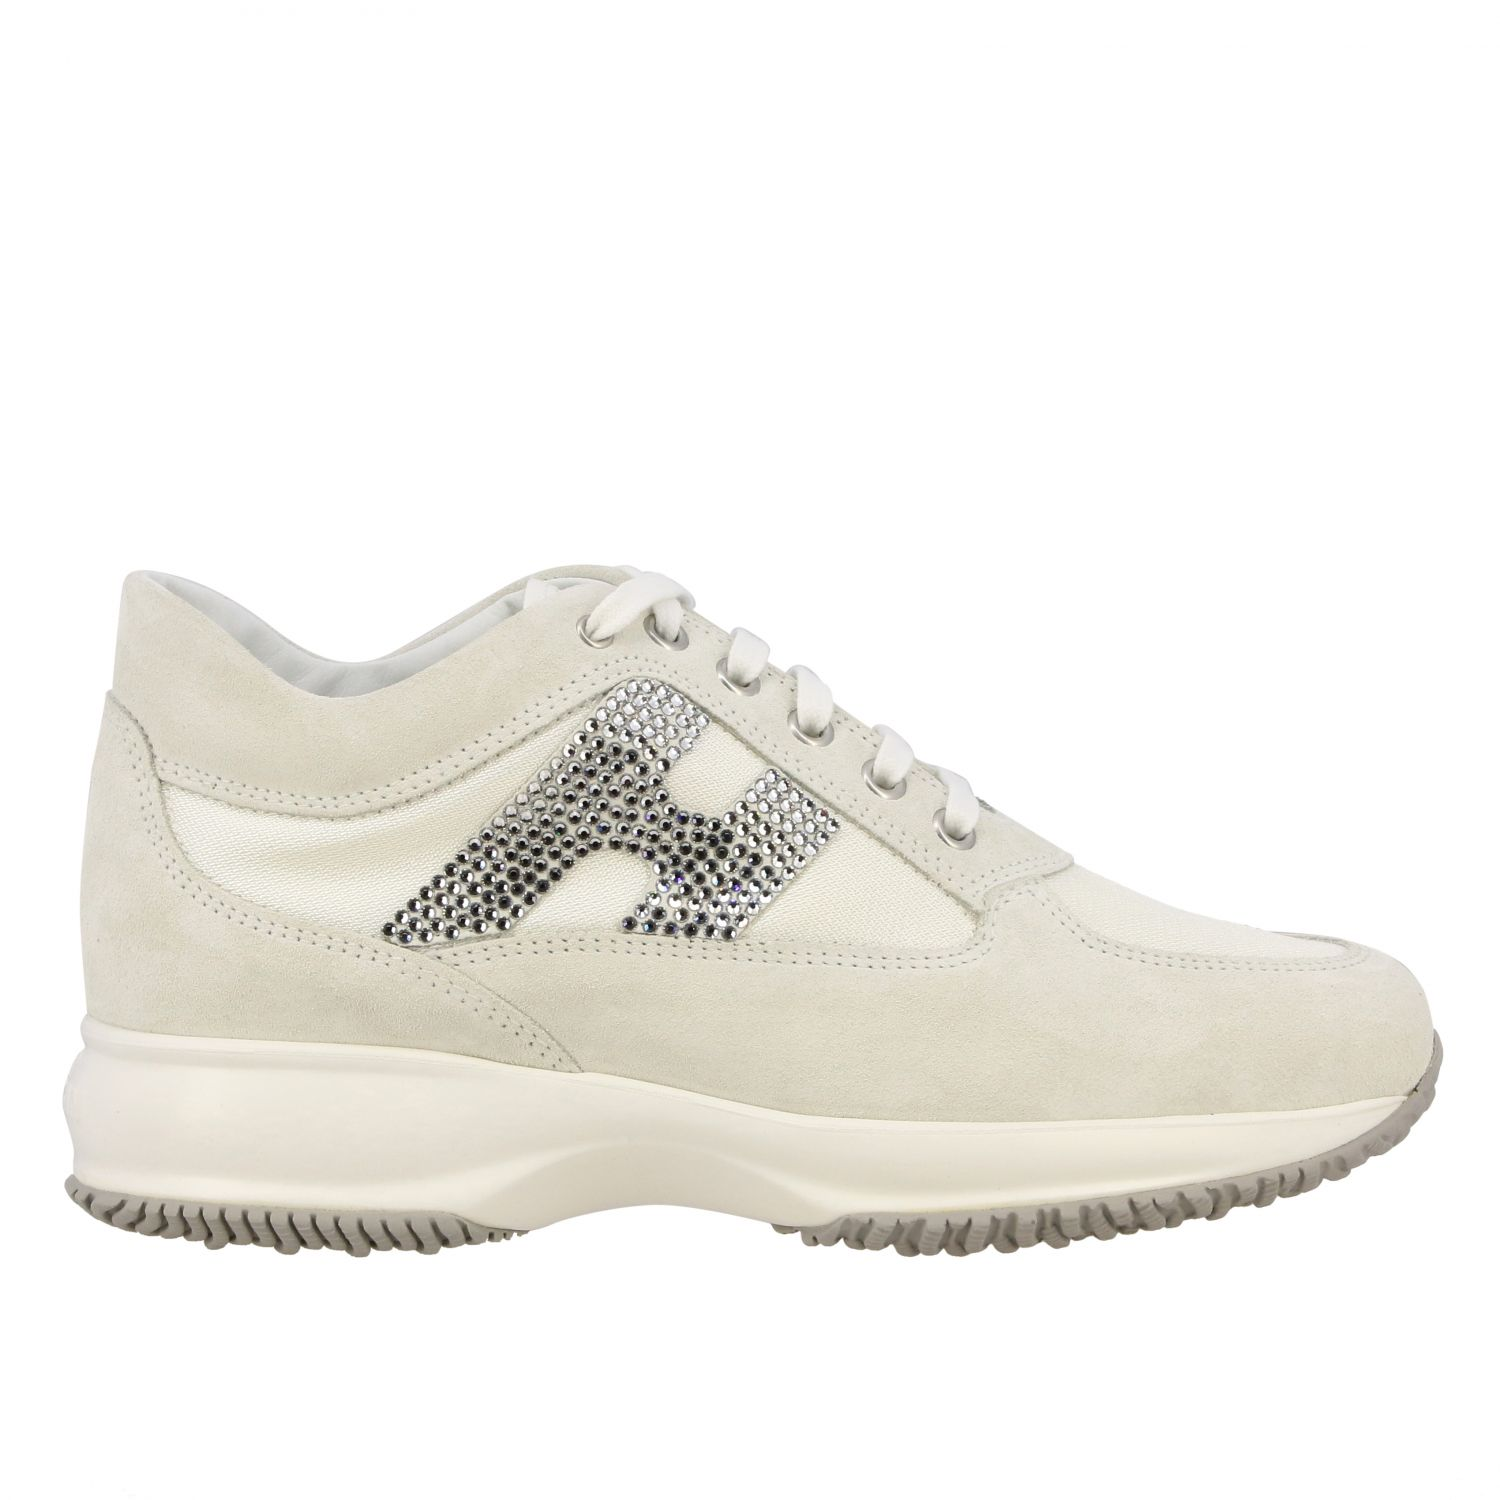 Shoes women Hogan white 1